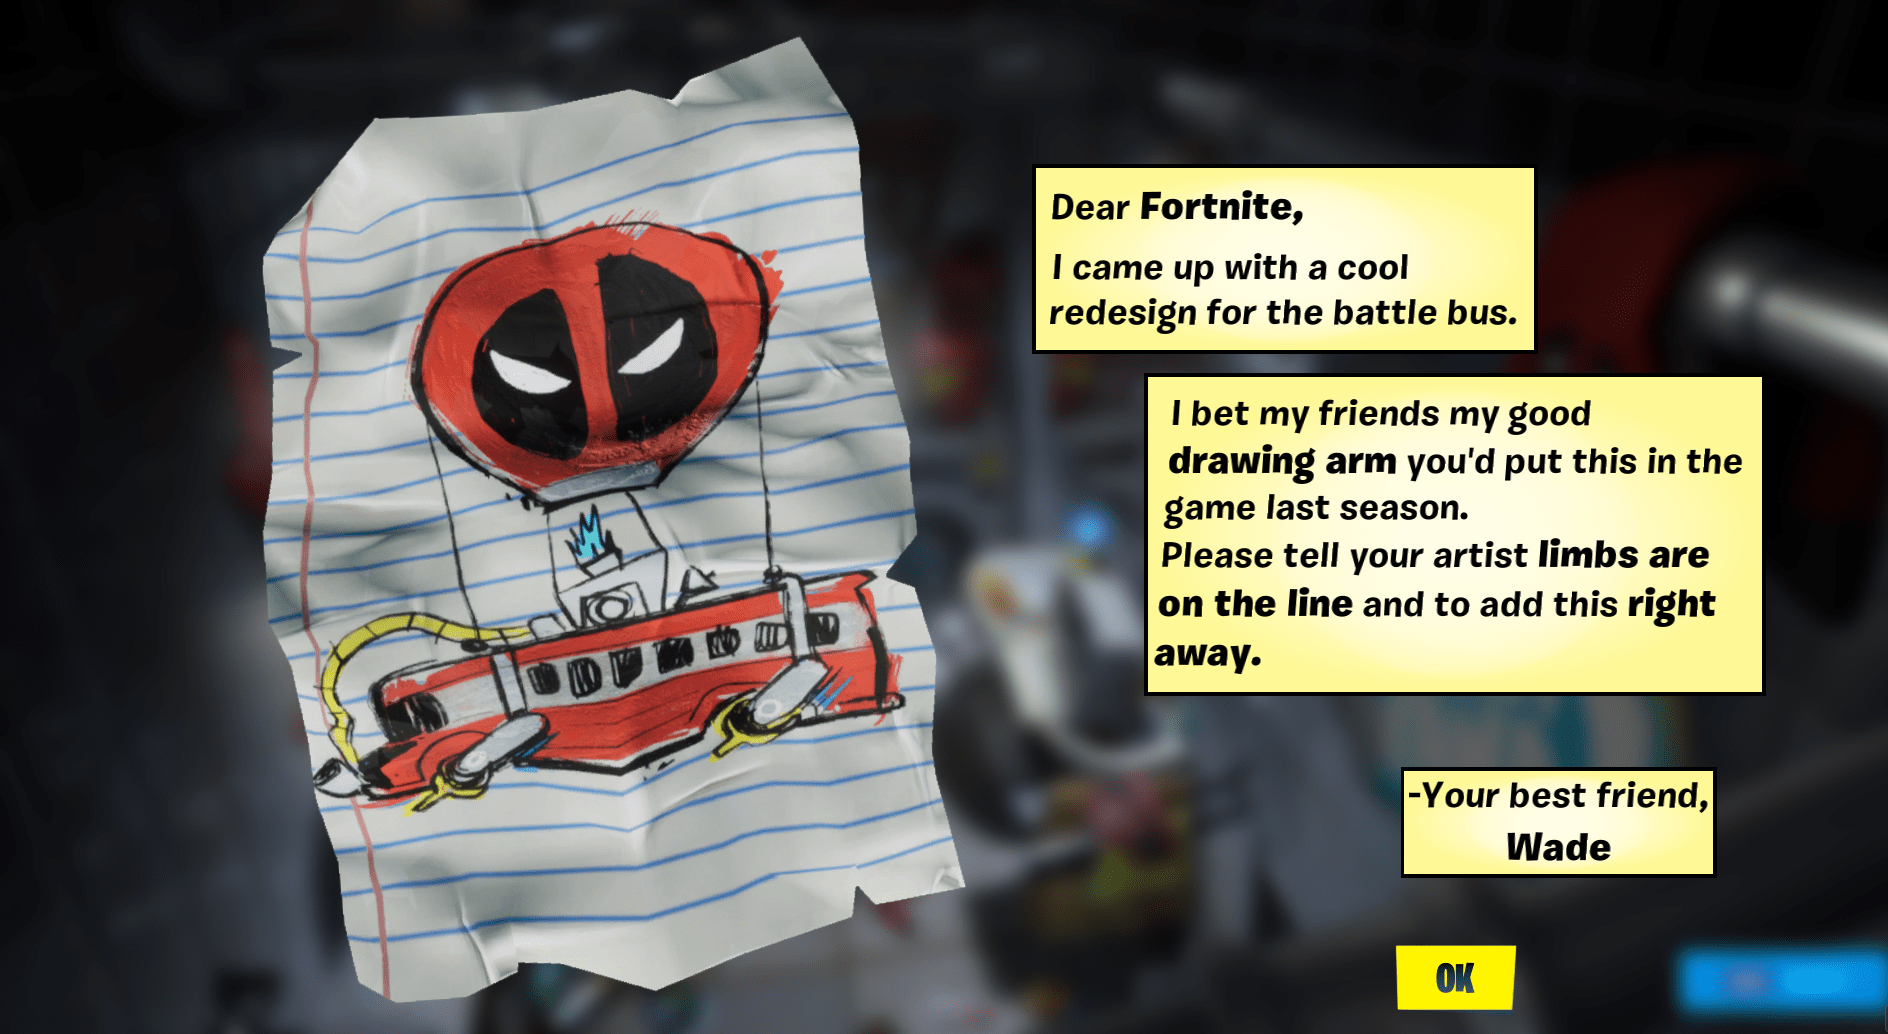 Deadpool's Letter to Epic Games